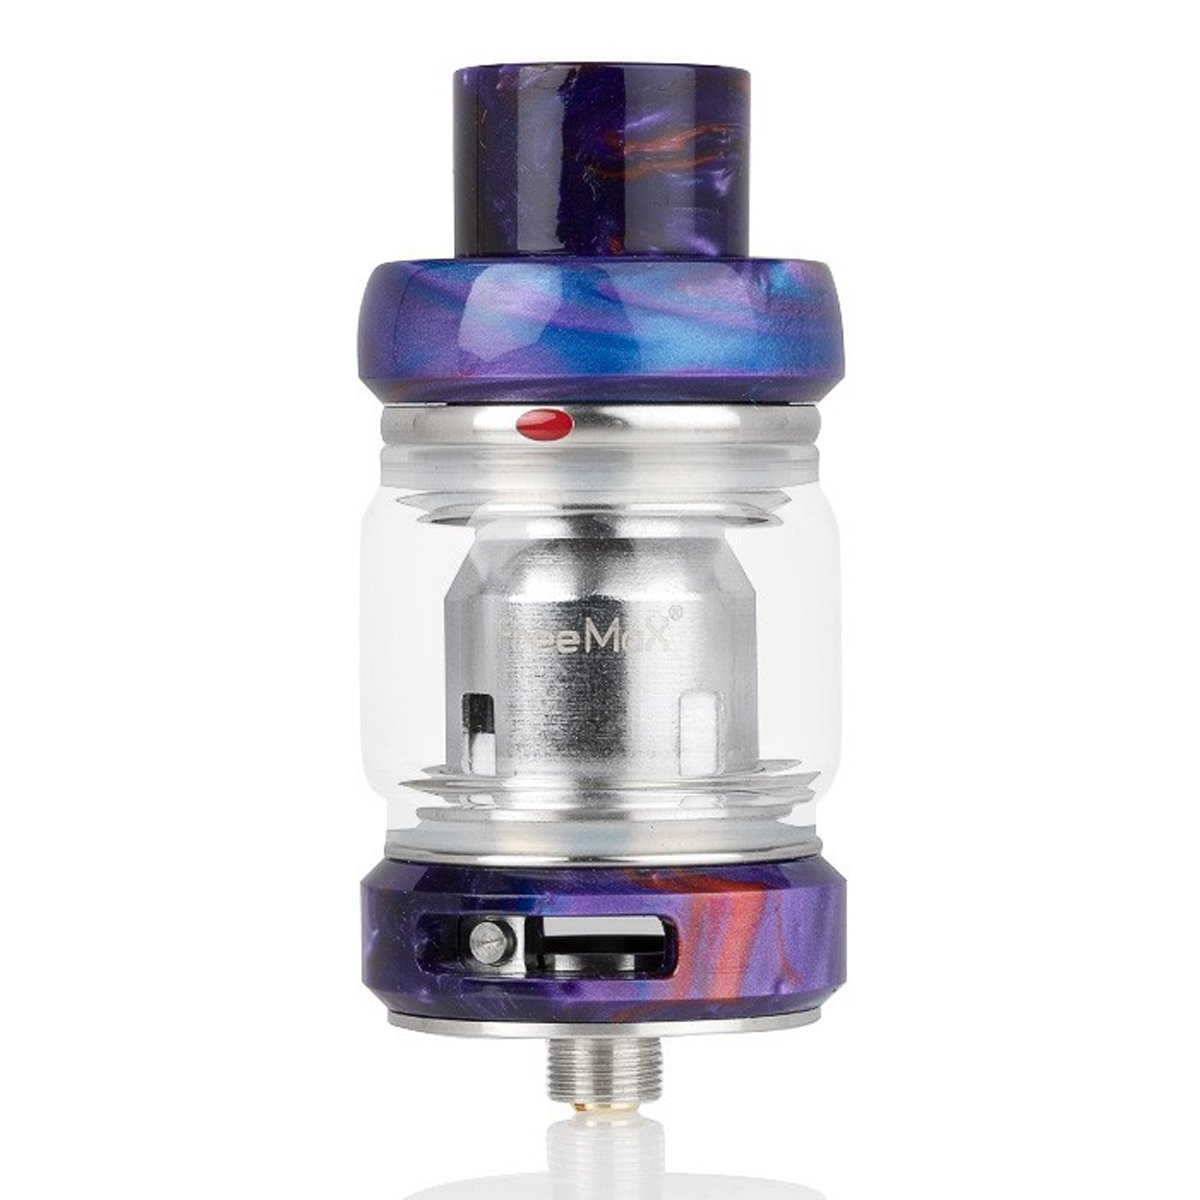 FreeMax Fireluke Mesh Pro 5ML / 6ML Sub-Ohm Tank Resin Edition